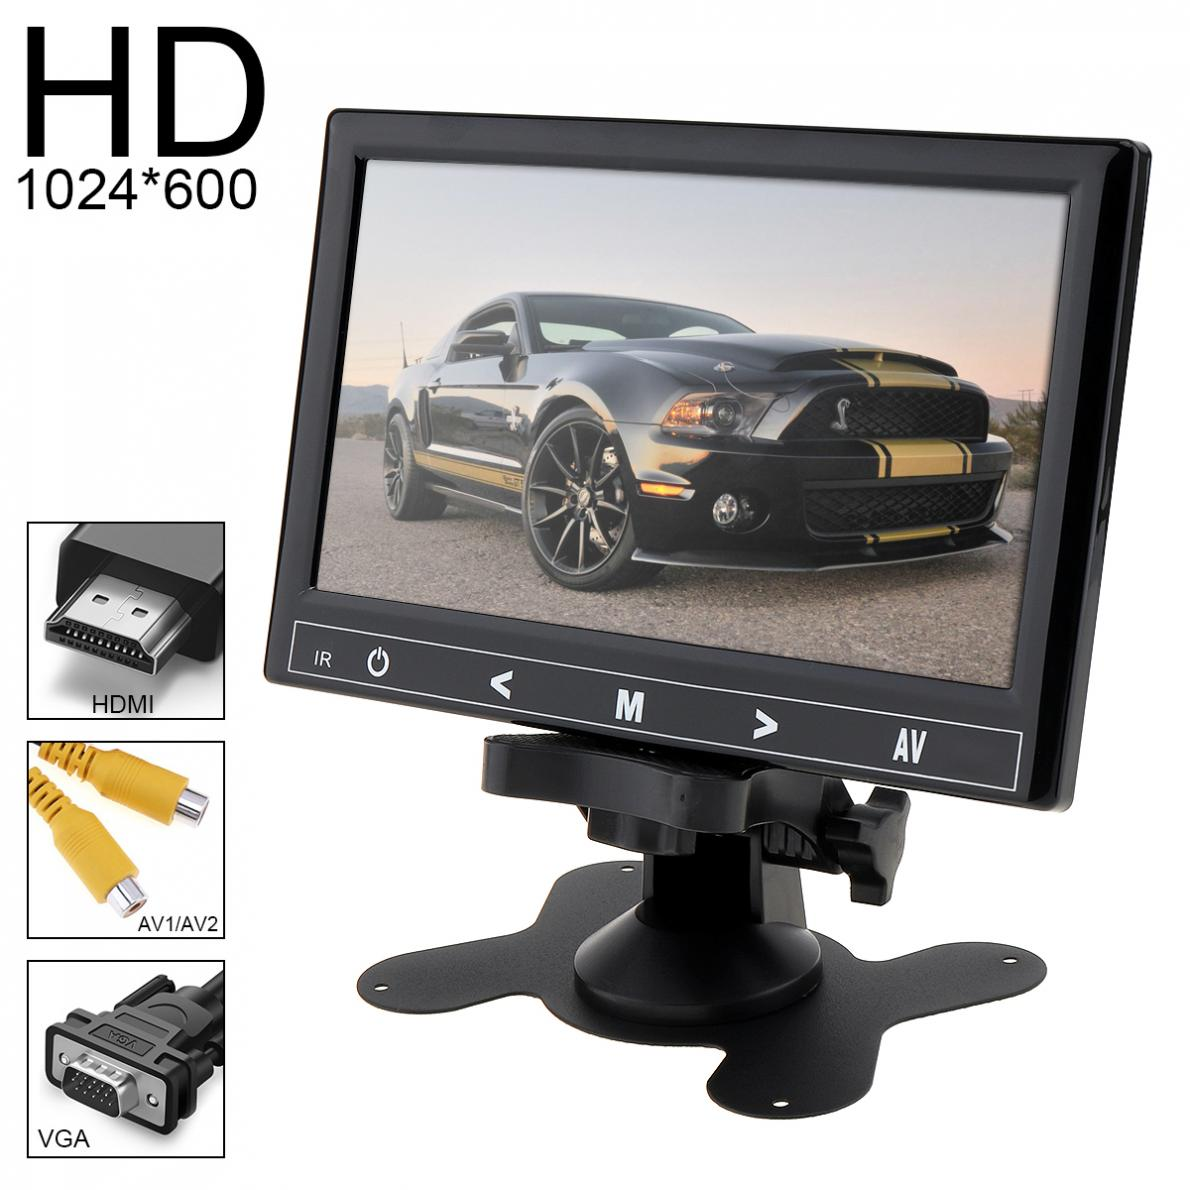 7 Inch 16:9 HD TFT LCD Color Car Rear View Monitor 2 Video Input DVD VCD Headrest Vehicle Monitor Support Audio Video HDMI VGA 800 wires soft silver occ alloy teflo aft earphone cable for westone es3x es5 um2 um3xrc um3x w4r ln005403